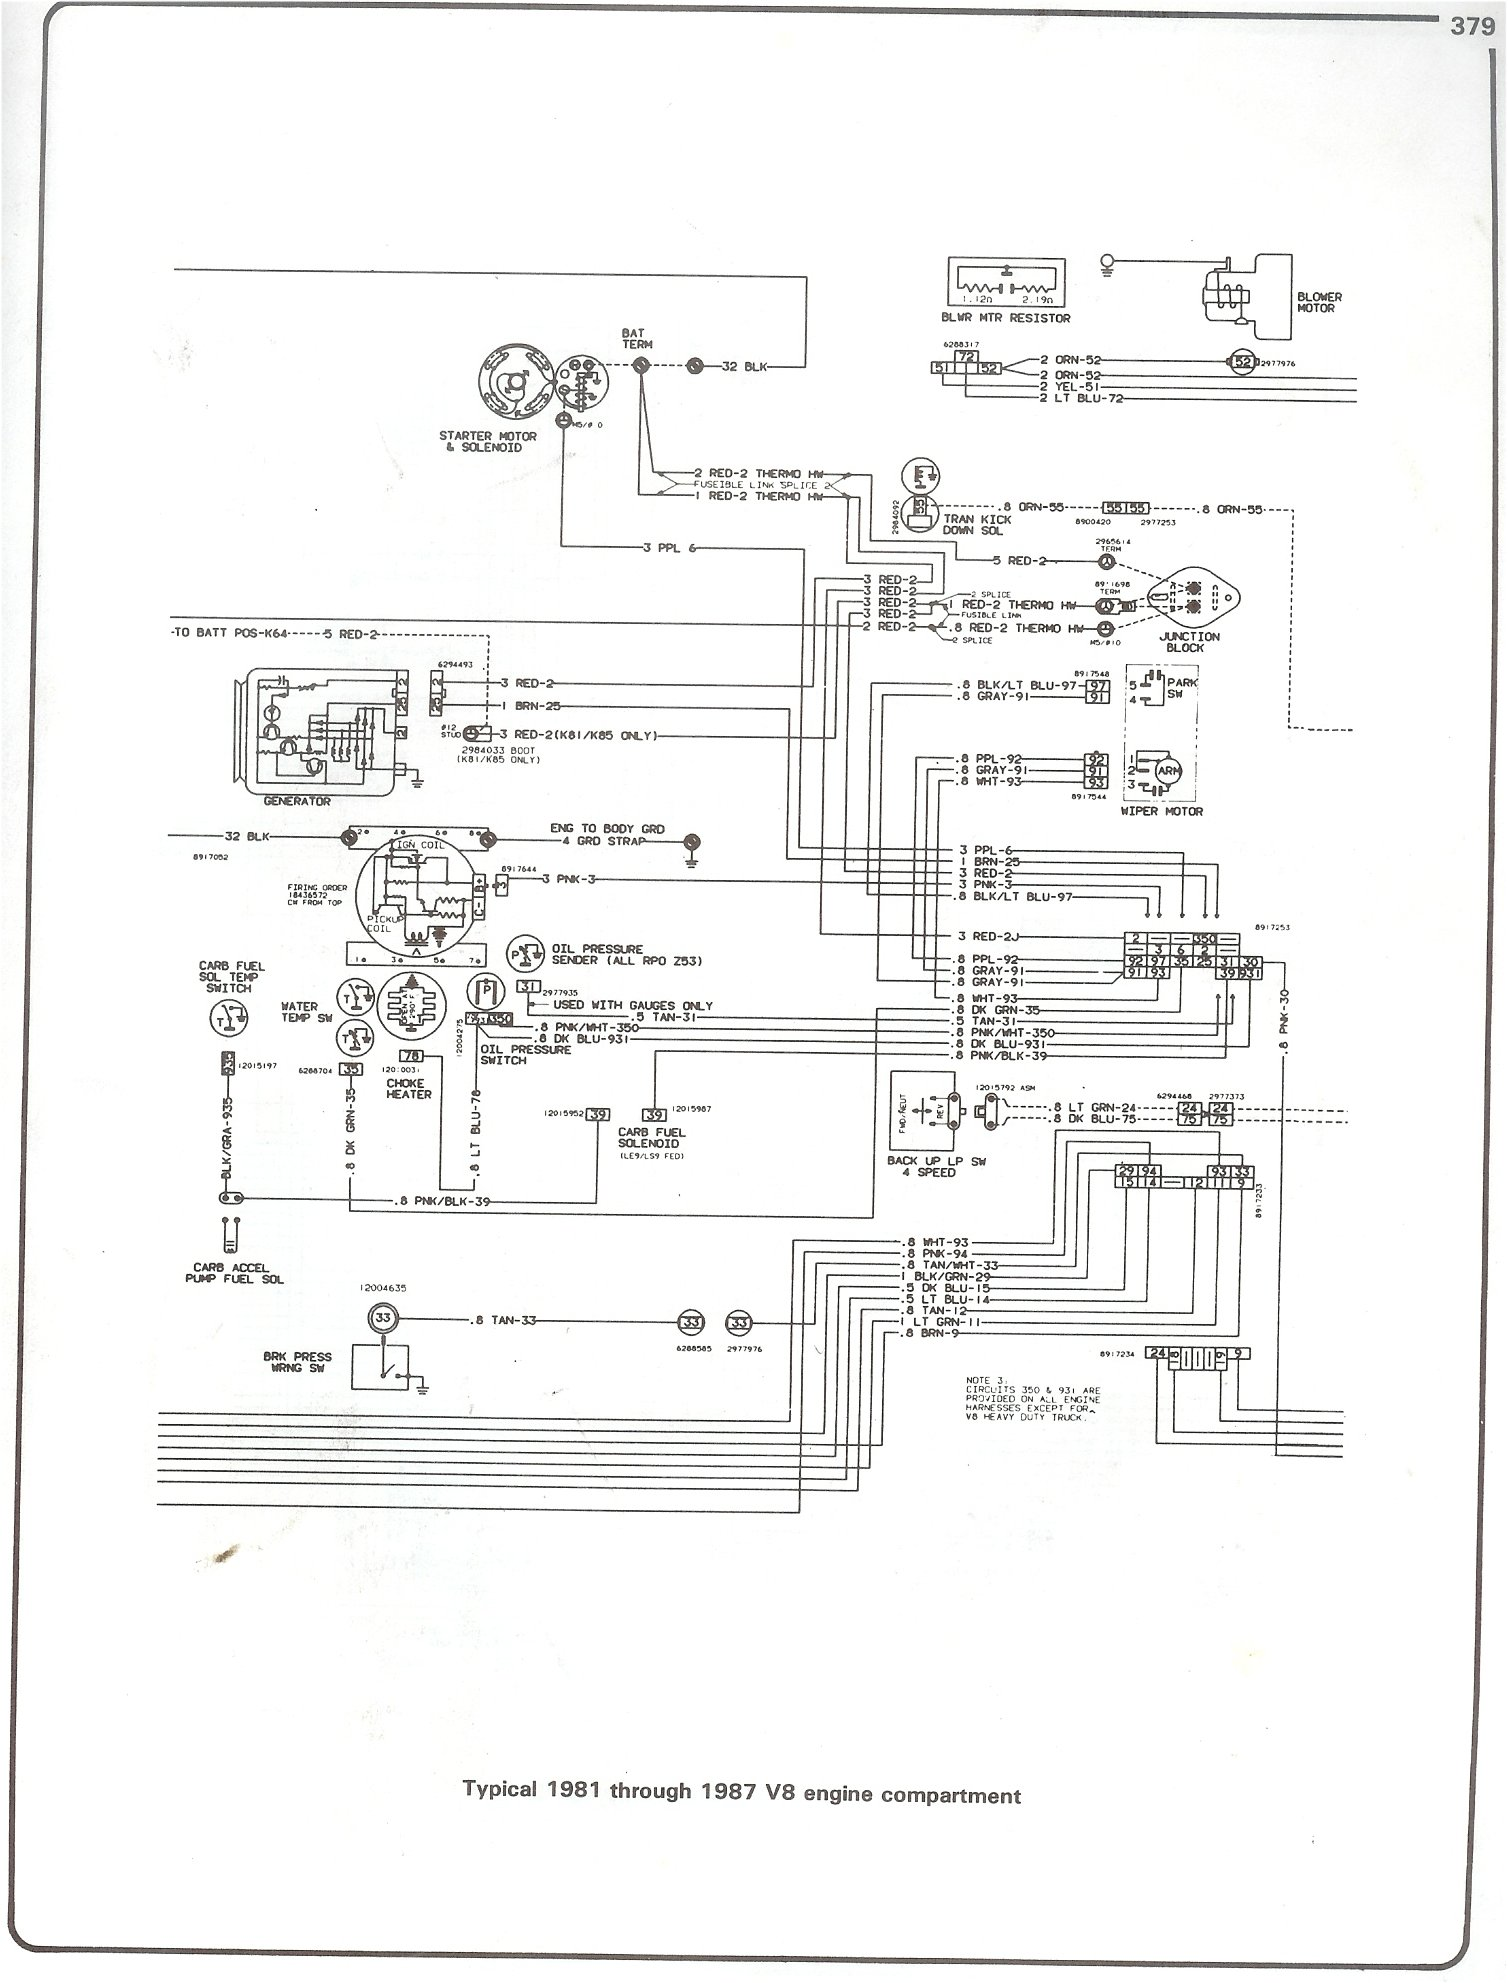 81 87_V8_engine complete 73 87 wiring diagrams  at metegol.co